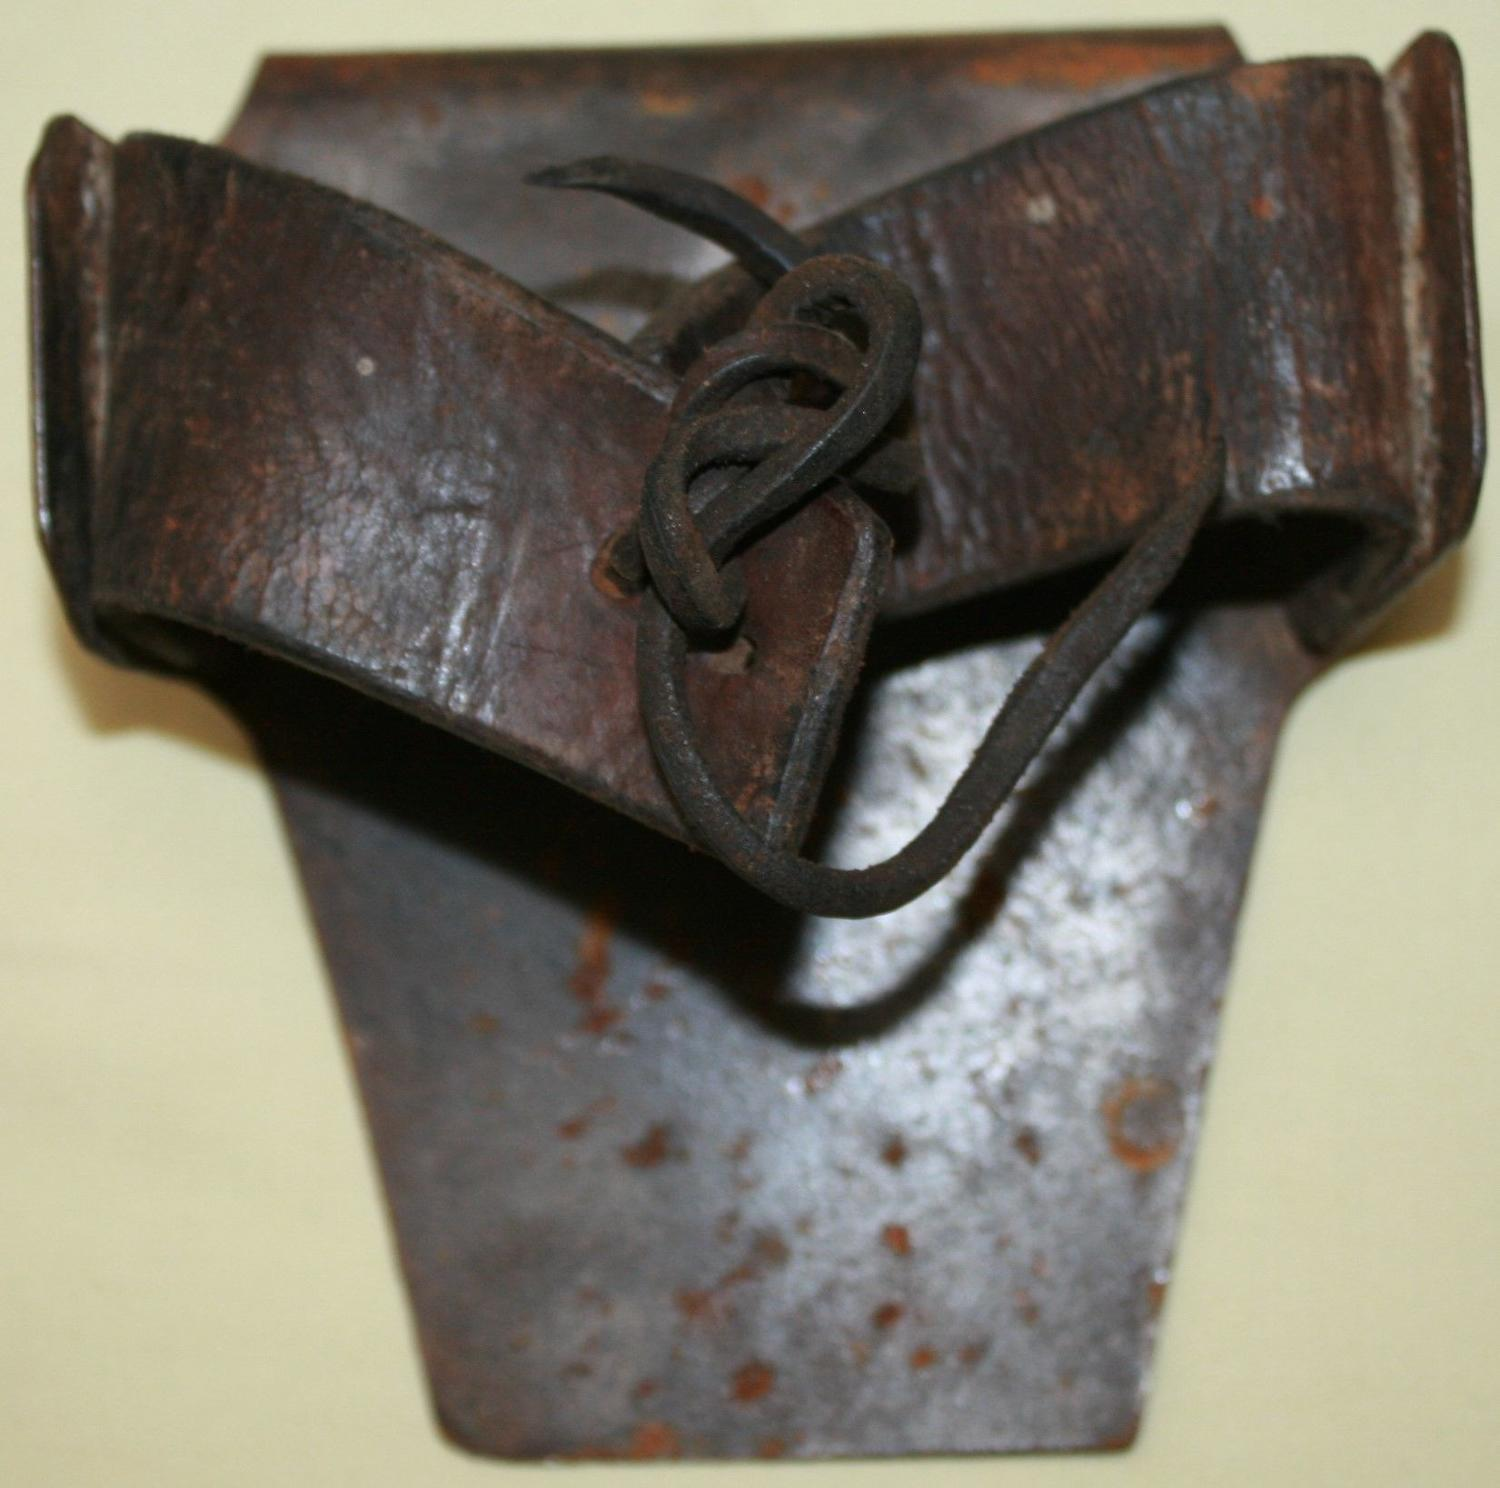 A WOMAN'S LAND ARMY FOOT PROTECTOR